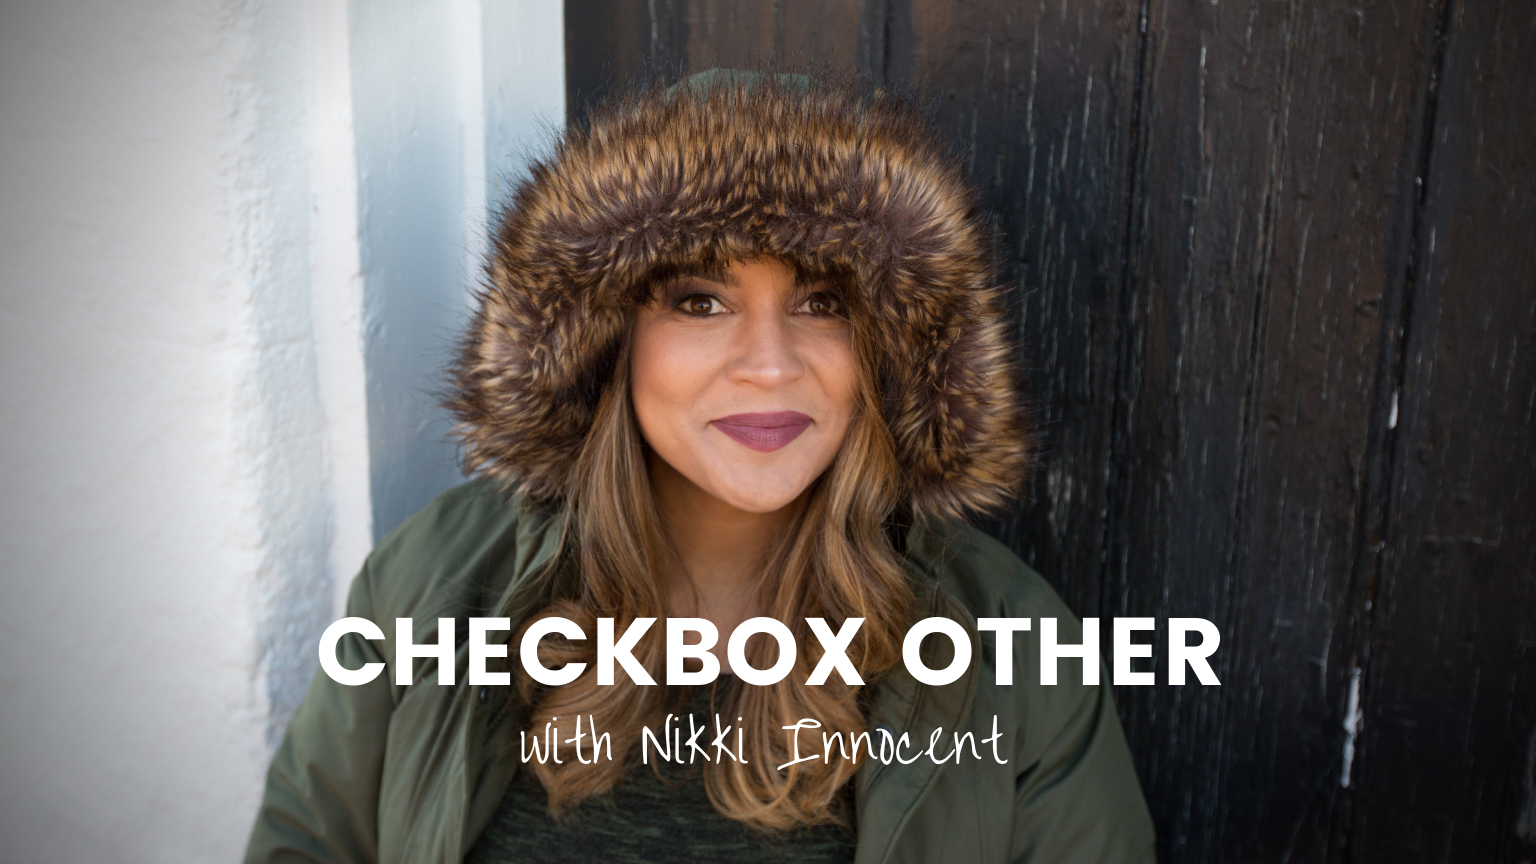 """Podcast host - I have a podcast, Checkbox Other, that celebrates stories of uniqueness and the moments in life where we feel """"other."""" During the episodes I have in-depth conversations with a variety of change-makers."""